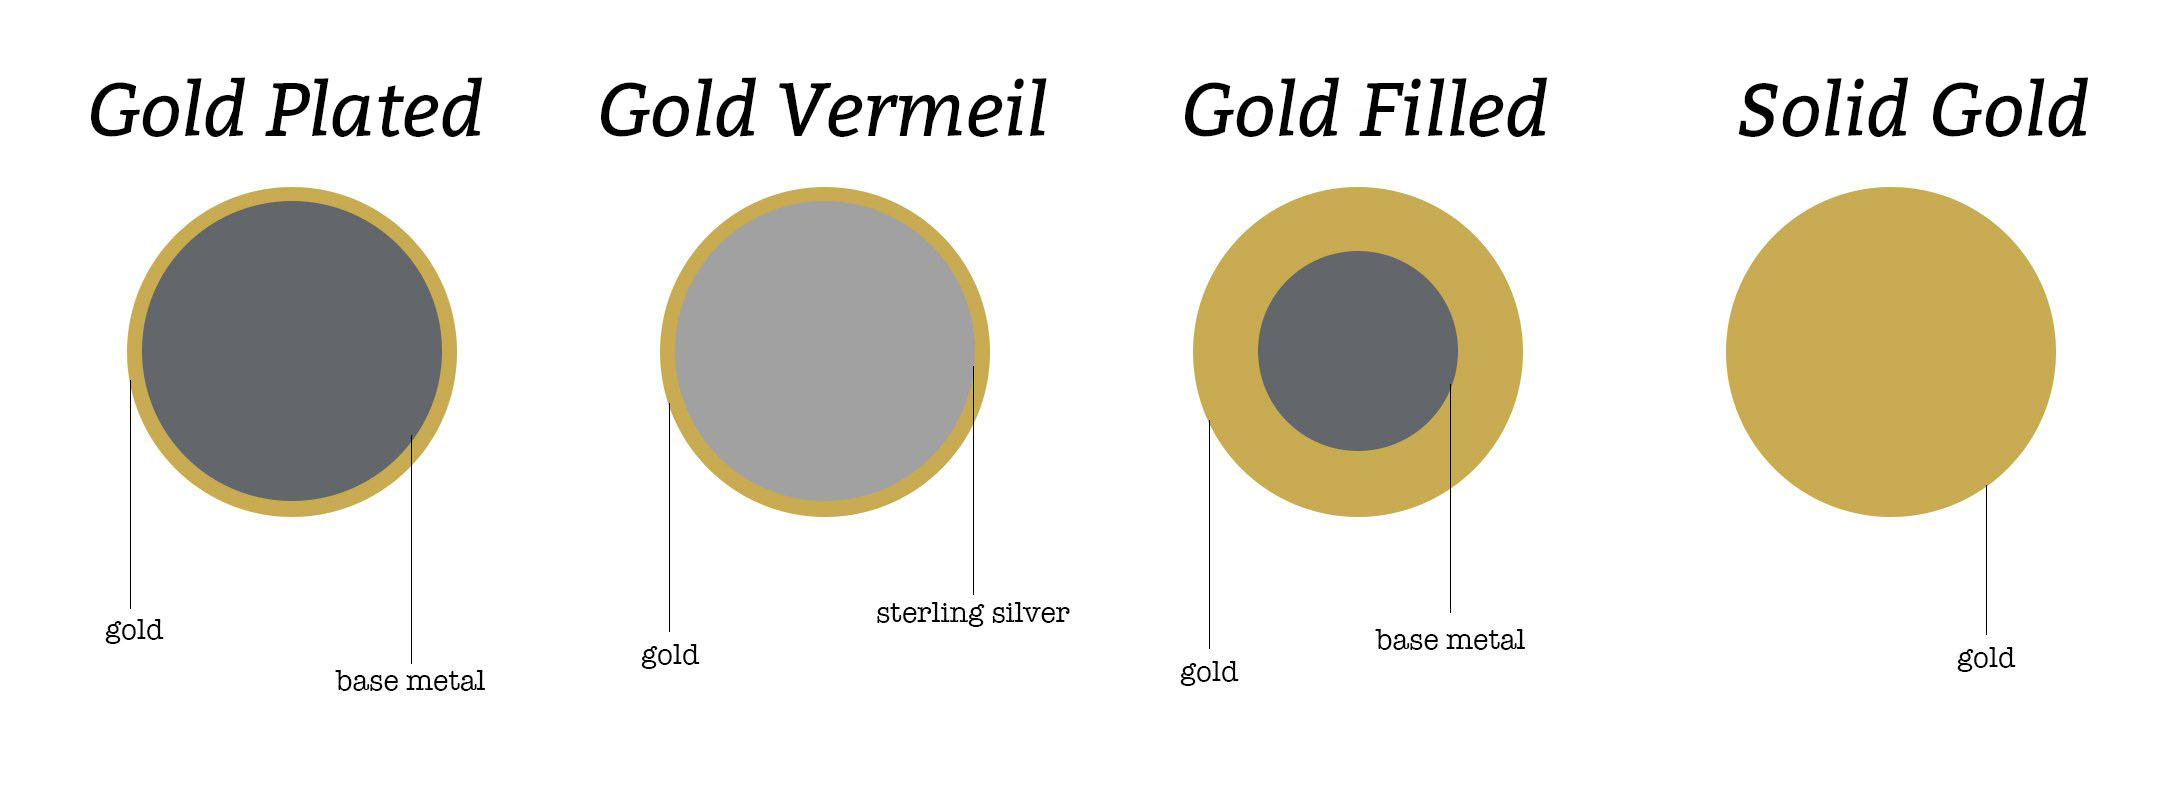 gold-plated-vs-solid-gold